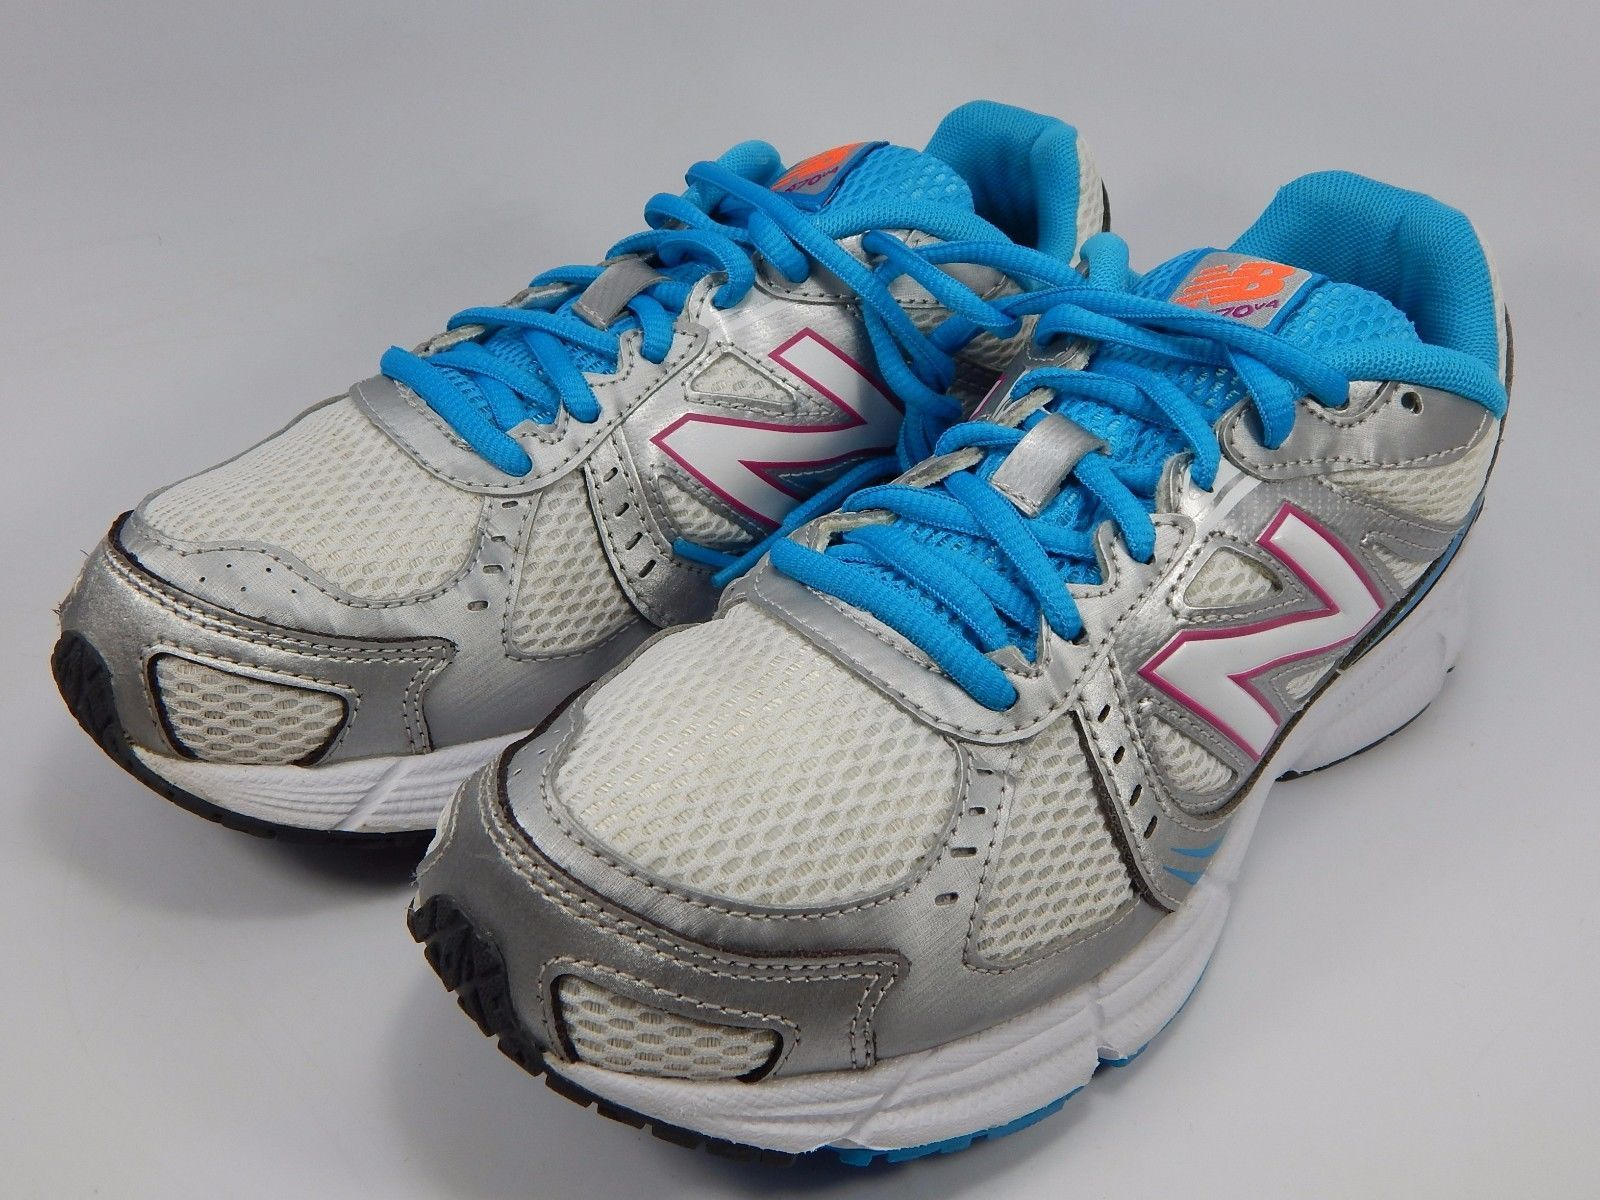 New Balance 470 v4 Women's Running Shoes Size US 8 D WIDE EU 39 Silver W470SP4